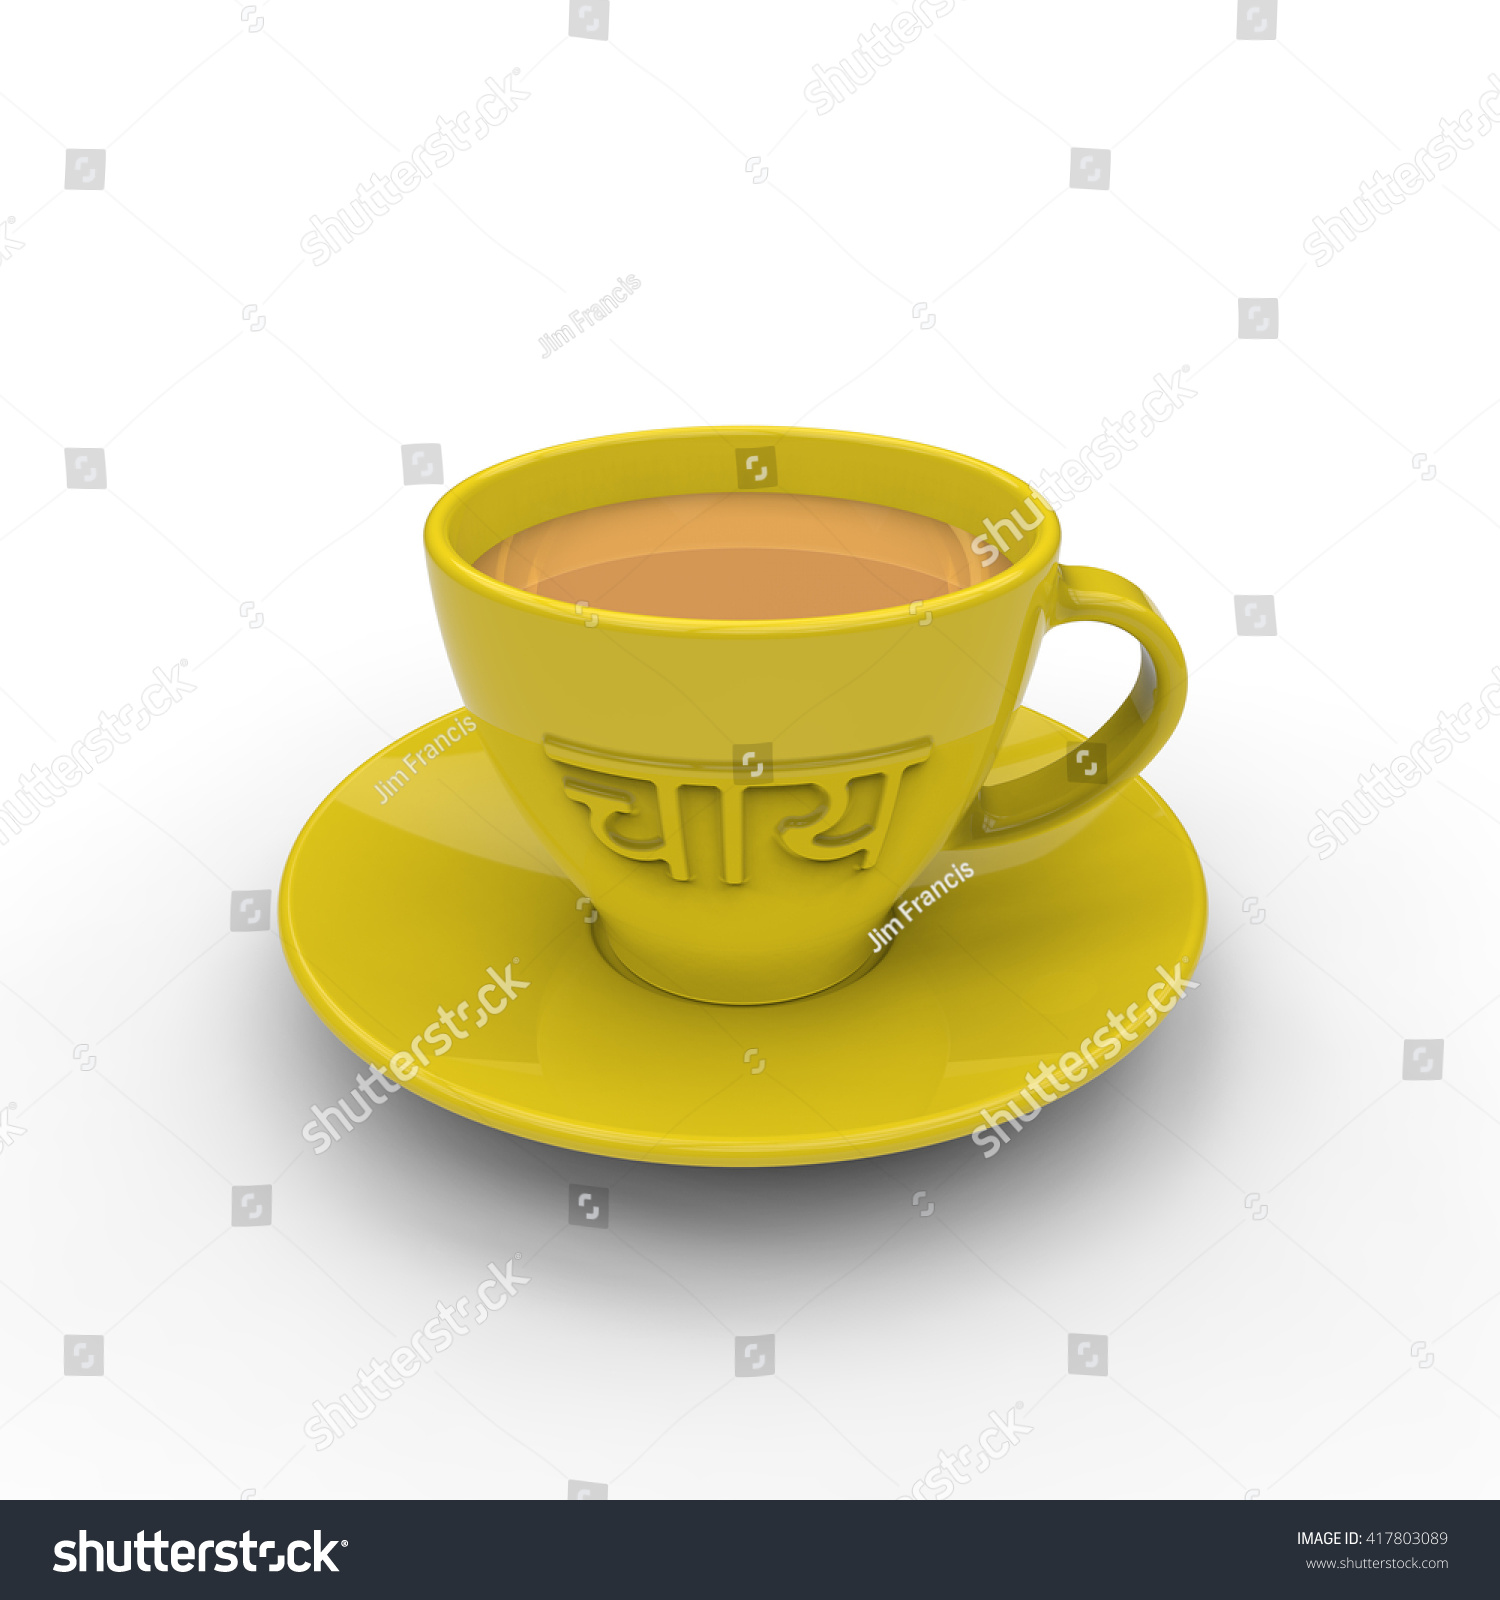 3d Rendering Yellow Cup Saucer Word Stock Illustration 417803089 ...